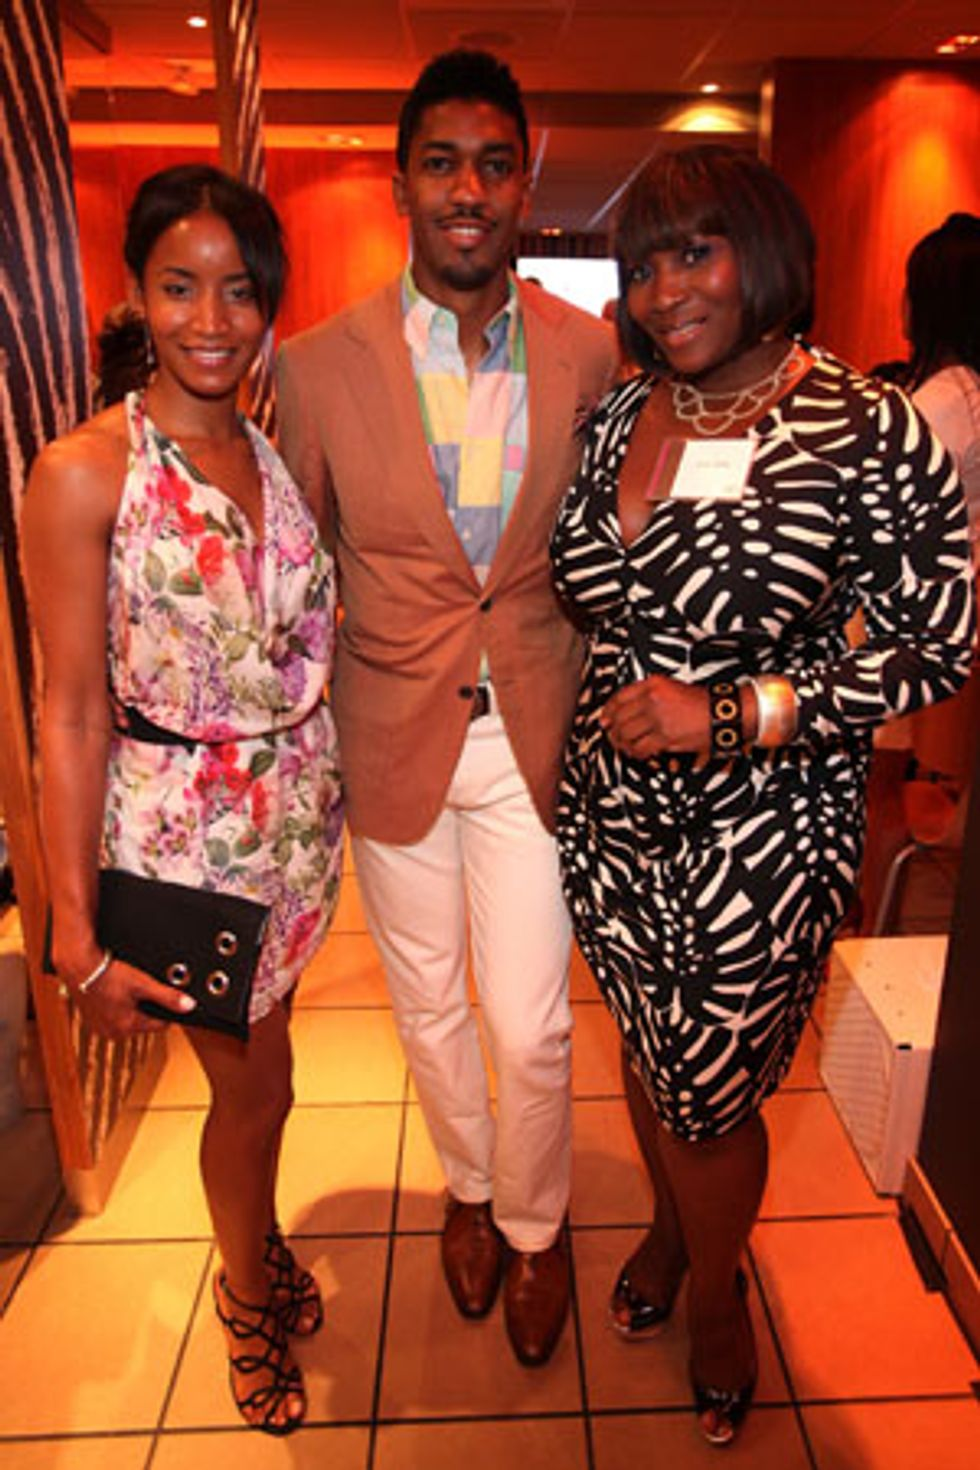 Snack Wraps, Wrap Dresses and Fonzworth Bentley at Dinner with Bevy